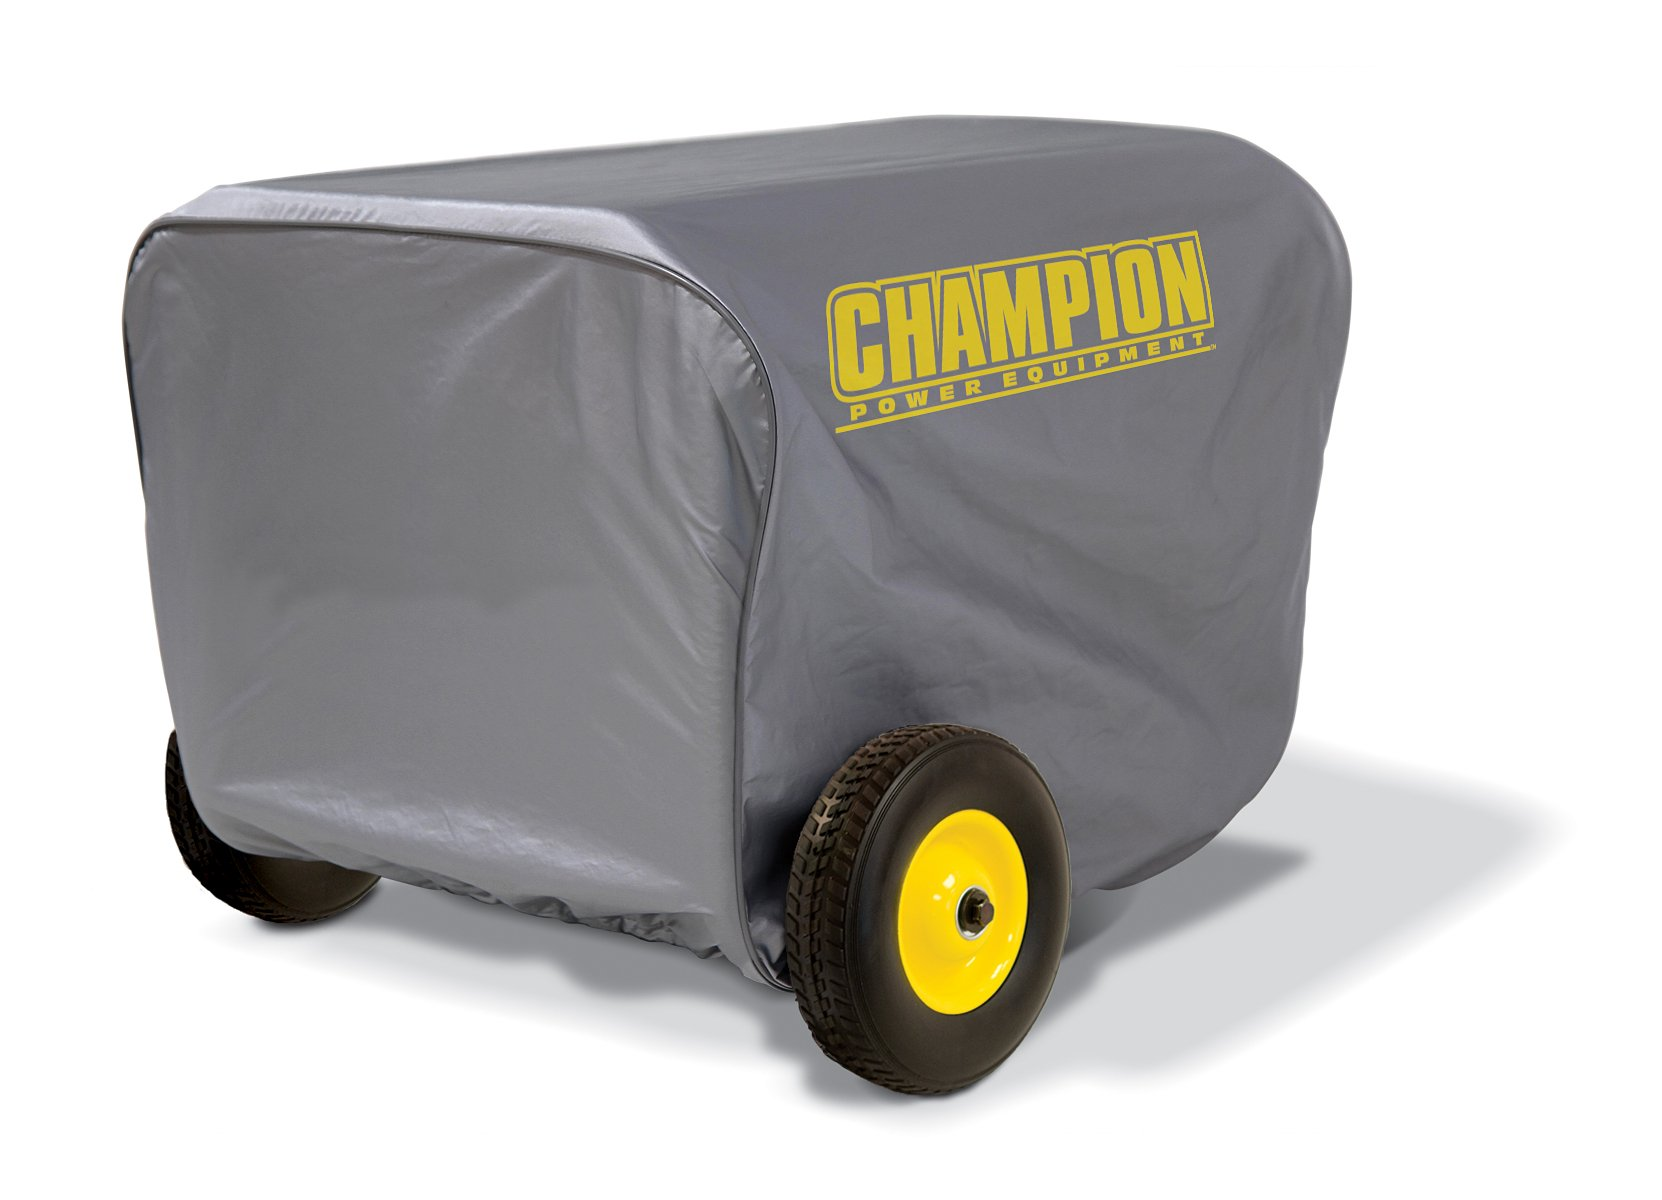 Champion Weather-Resistant Storage Cover for 4800-11,500-Watt Portable Generators by Champion Power Equipment